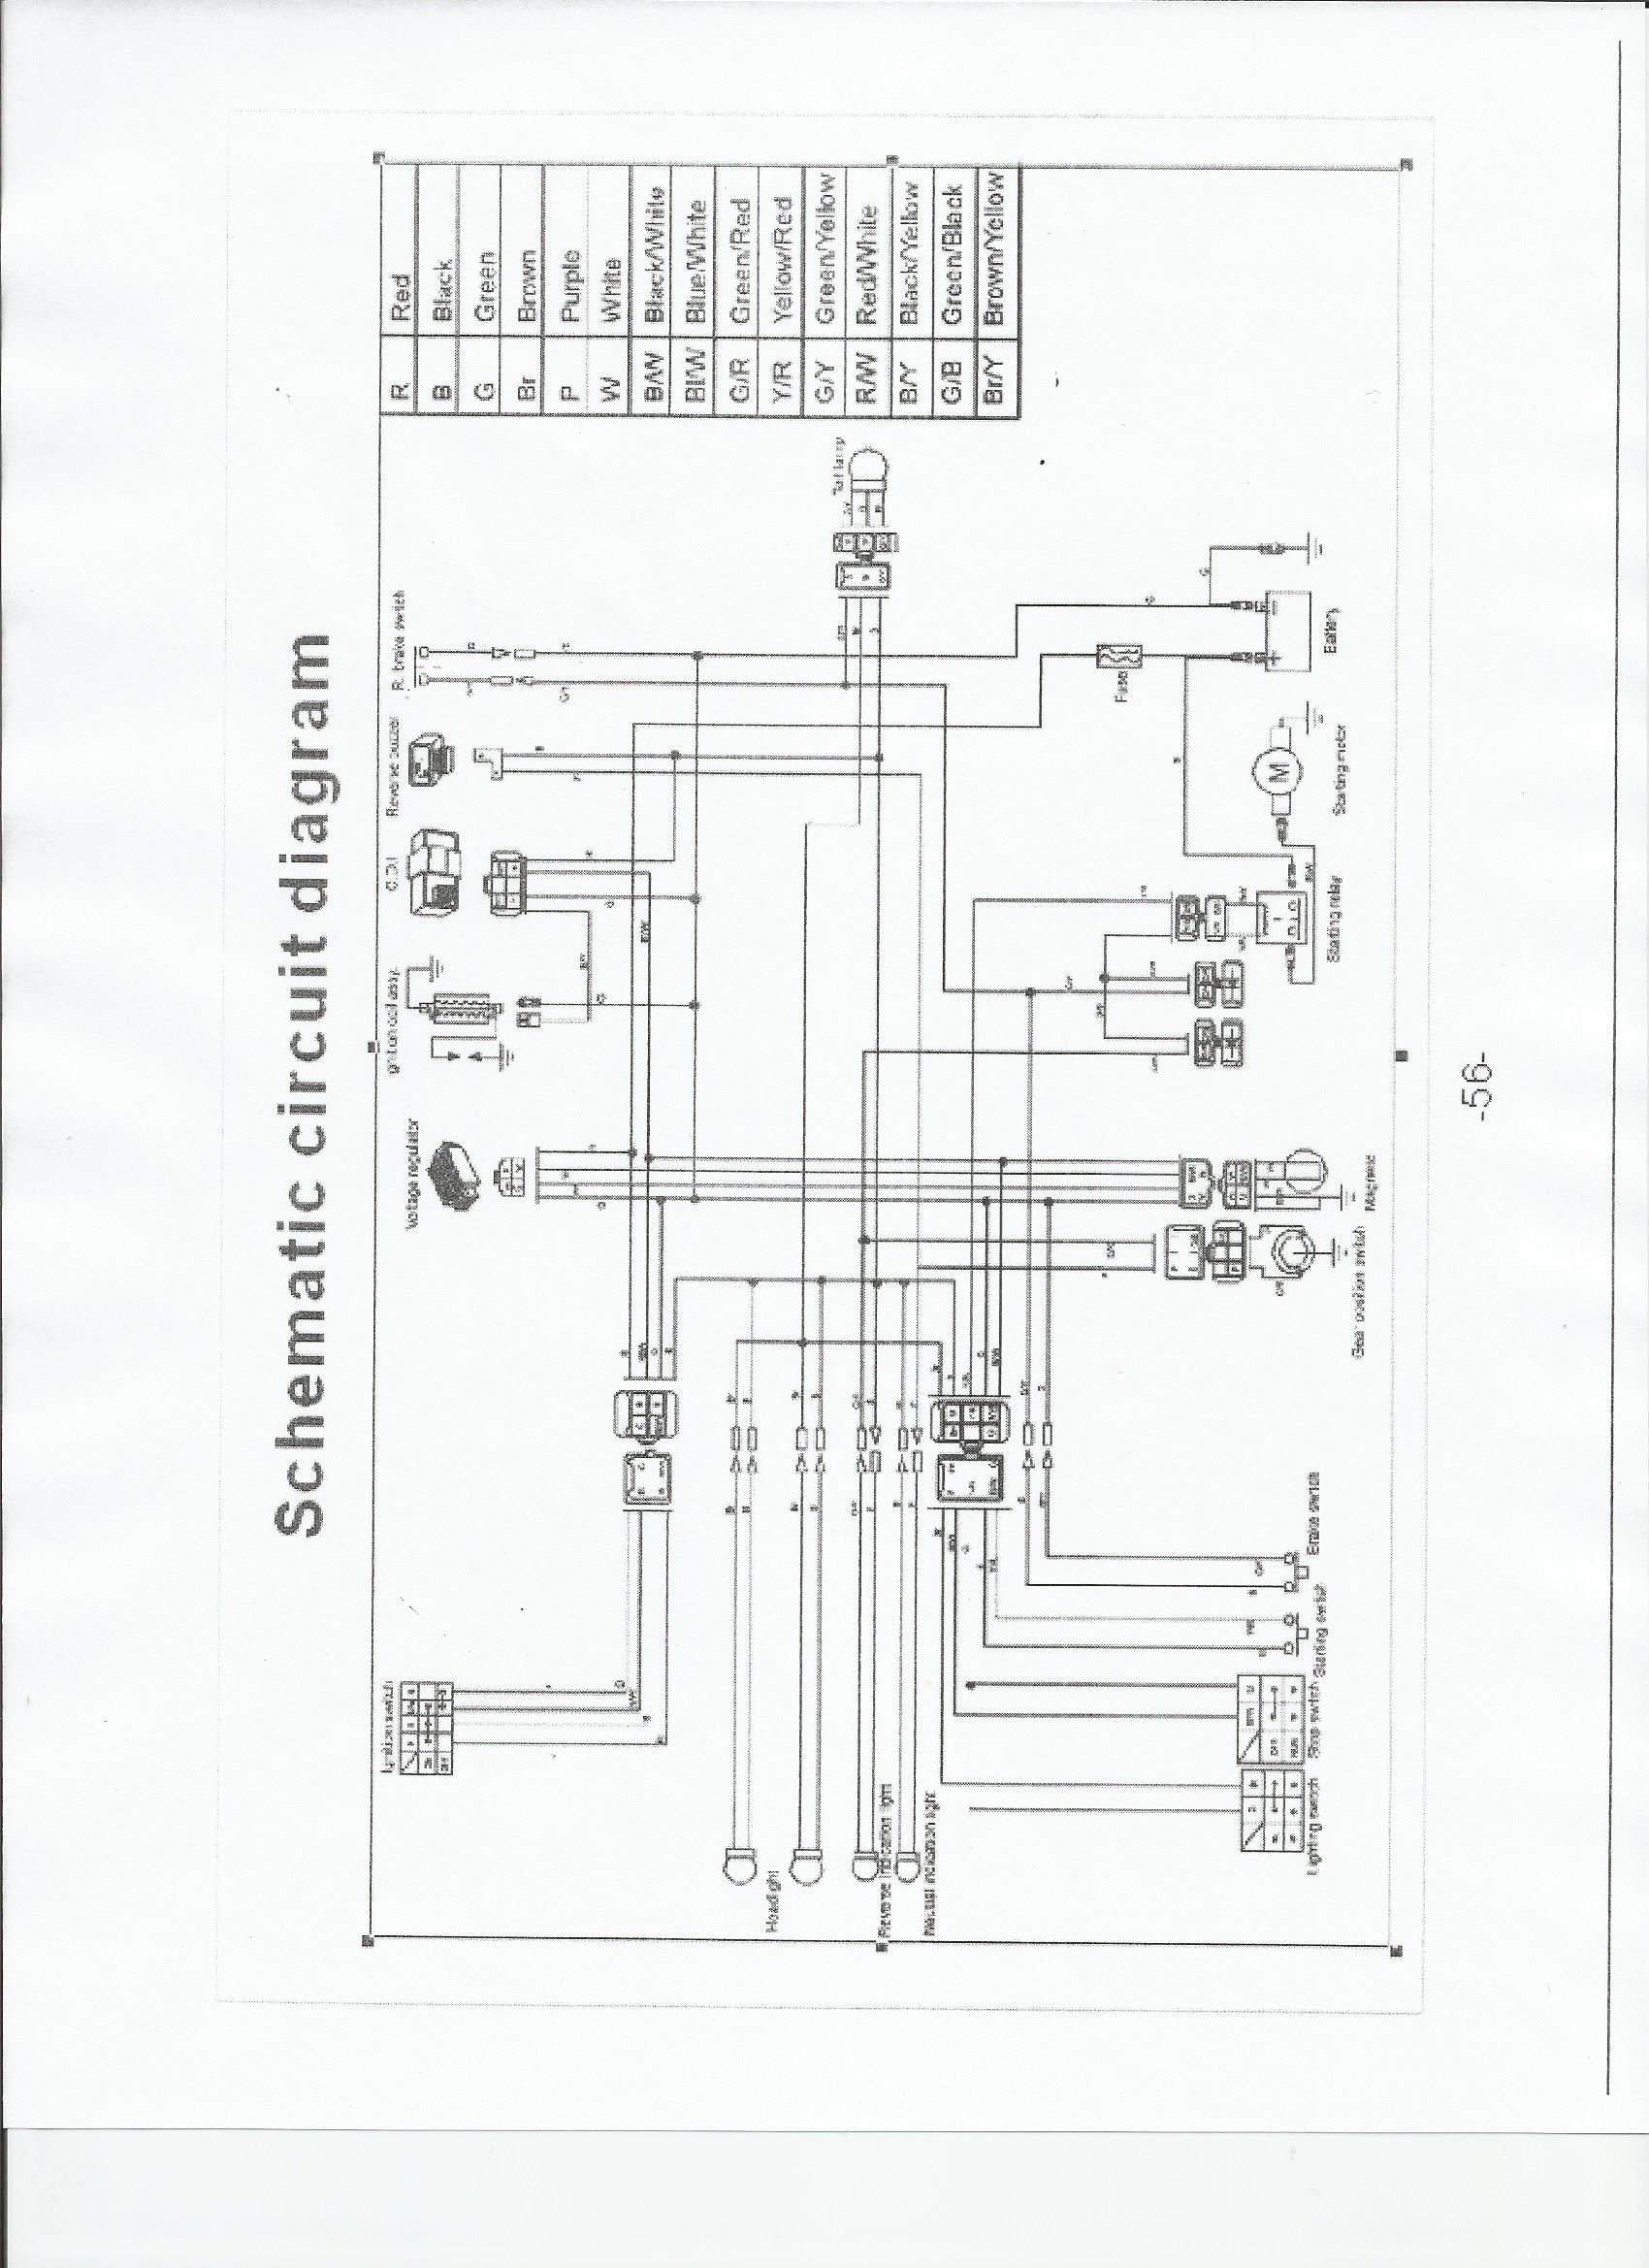 tao tao wiring schematic taotao mini and youth atv wiring schematic familygokarts support chinese 110 atv wiring diagram at mifinder.co